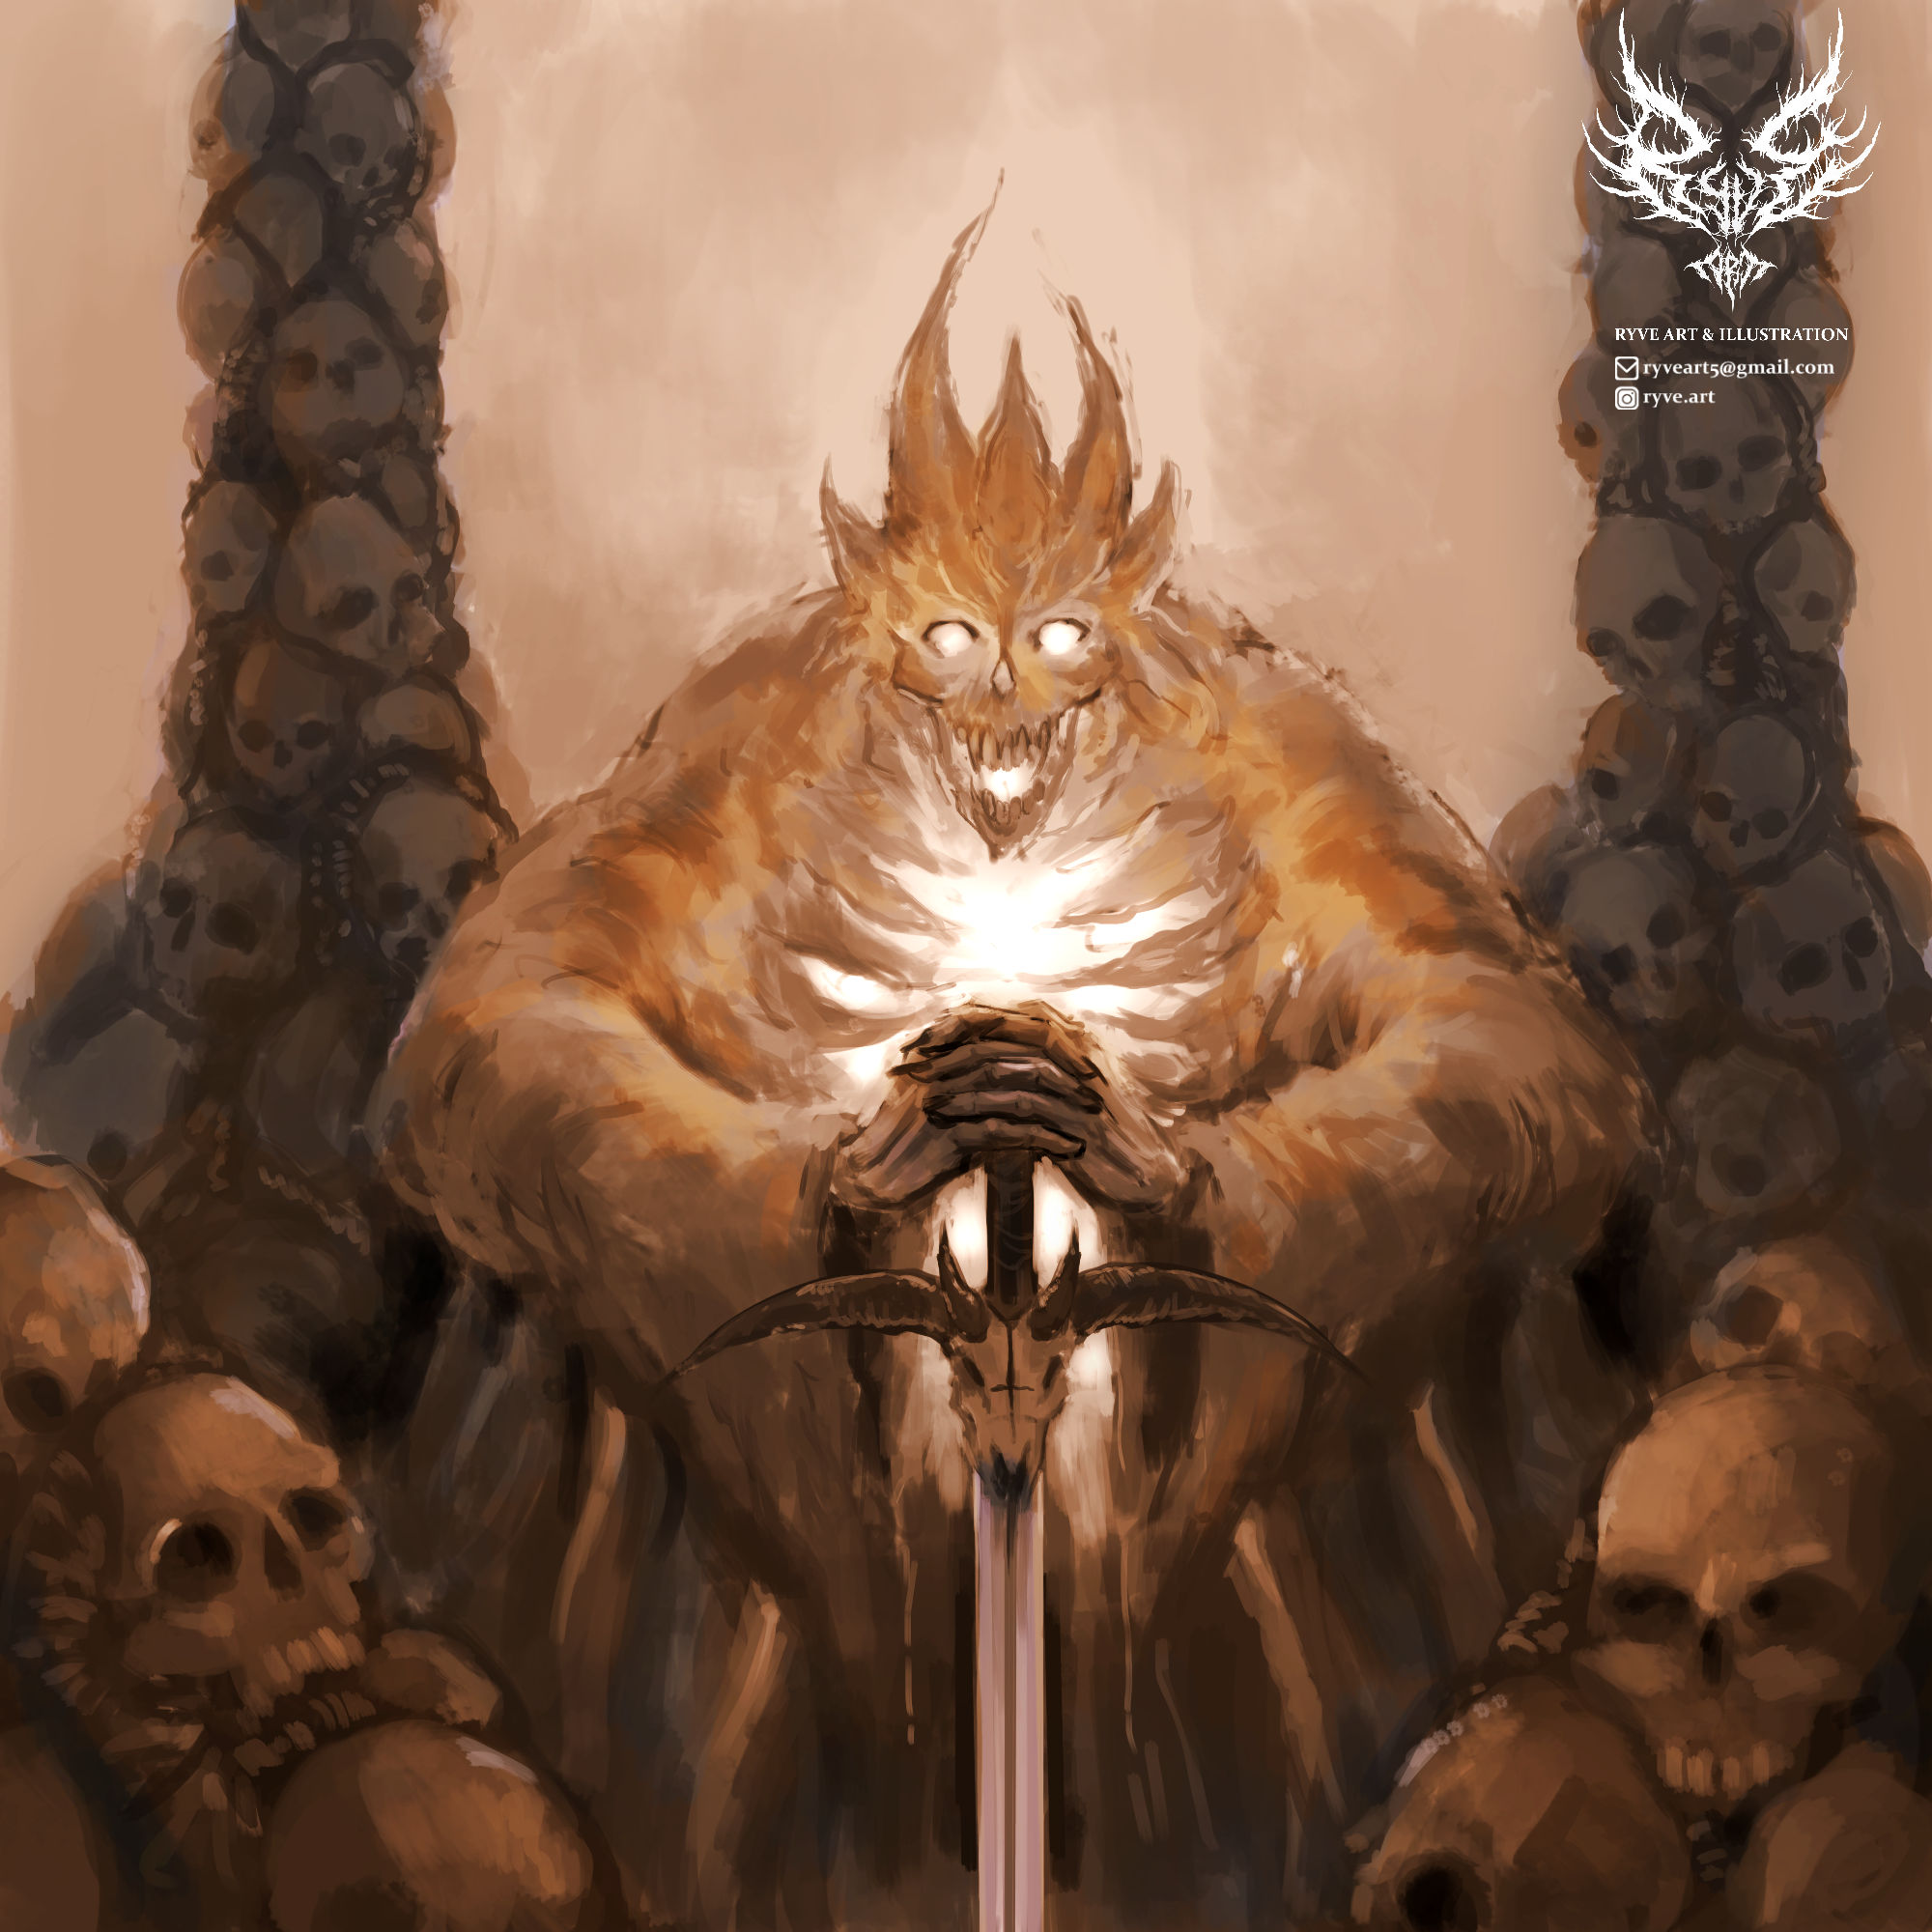 Hell King